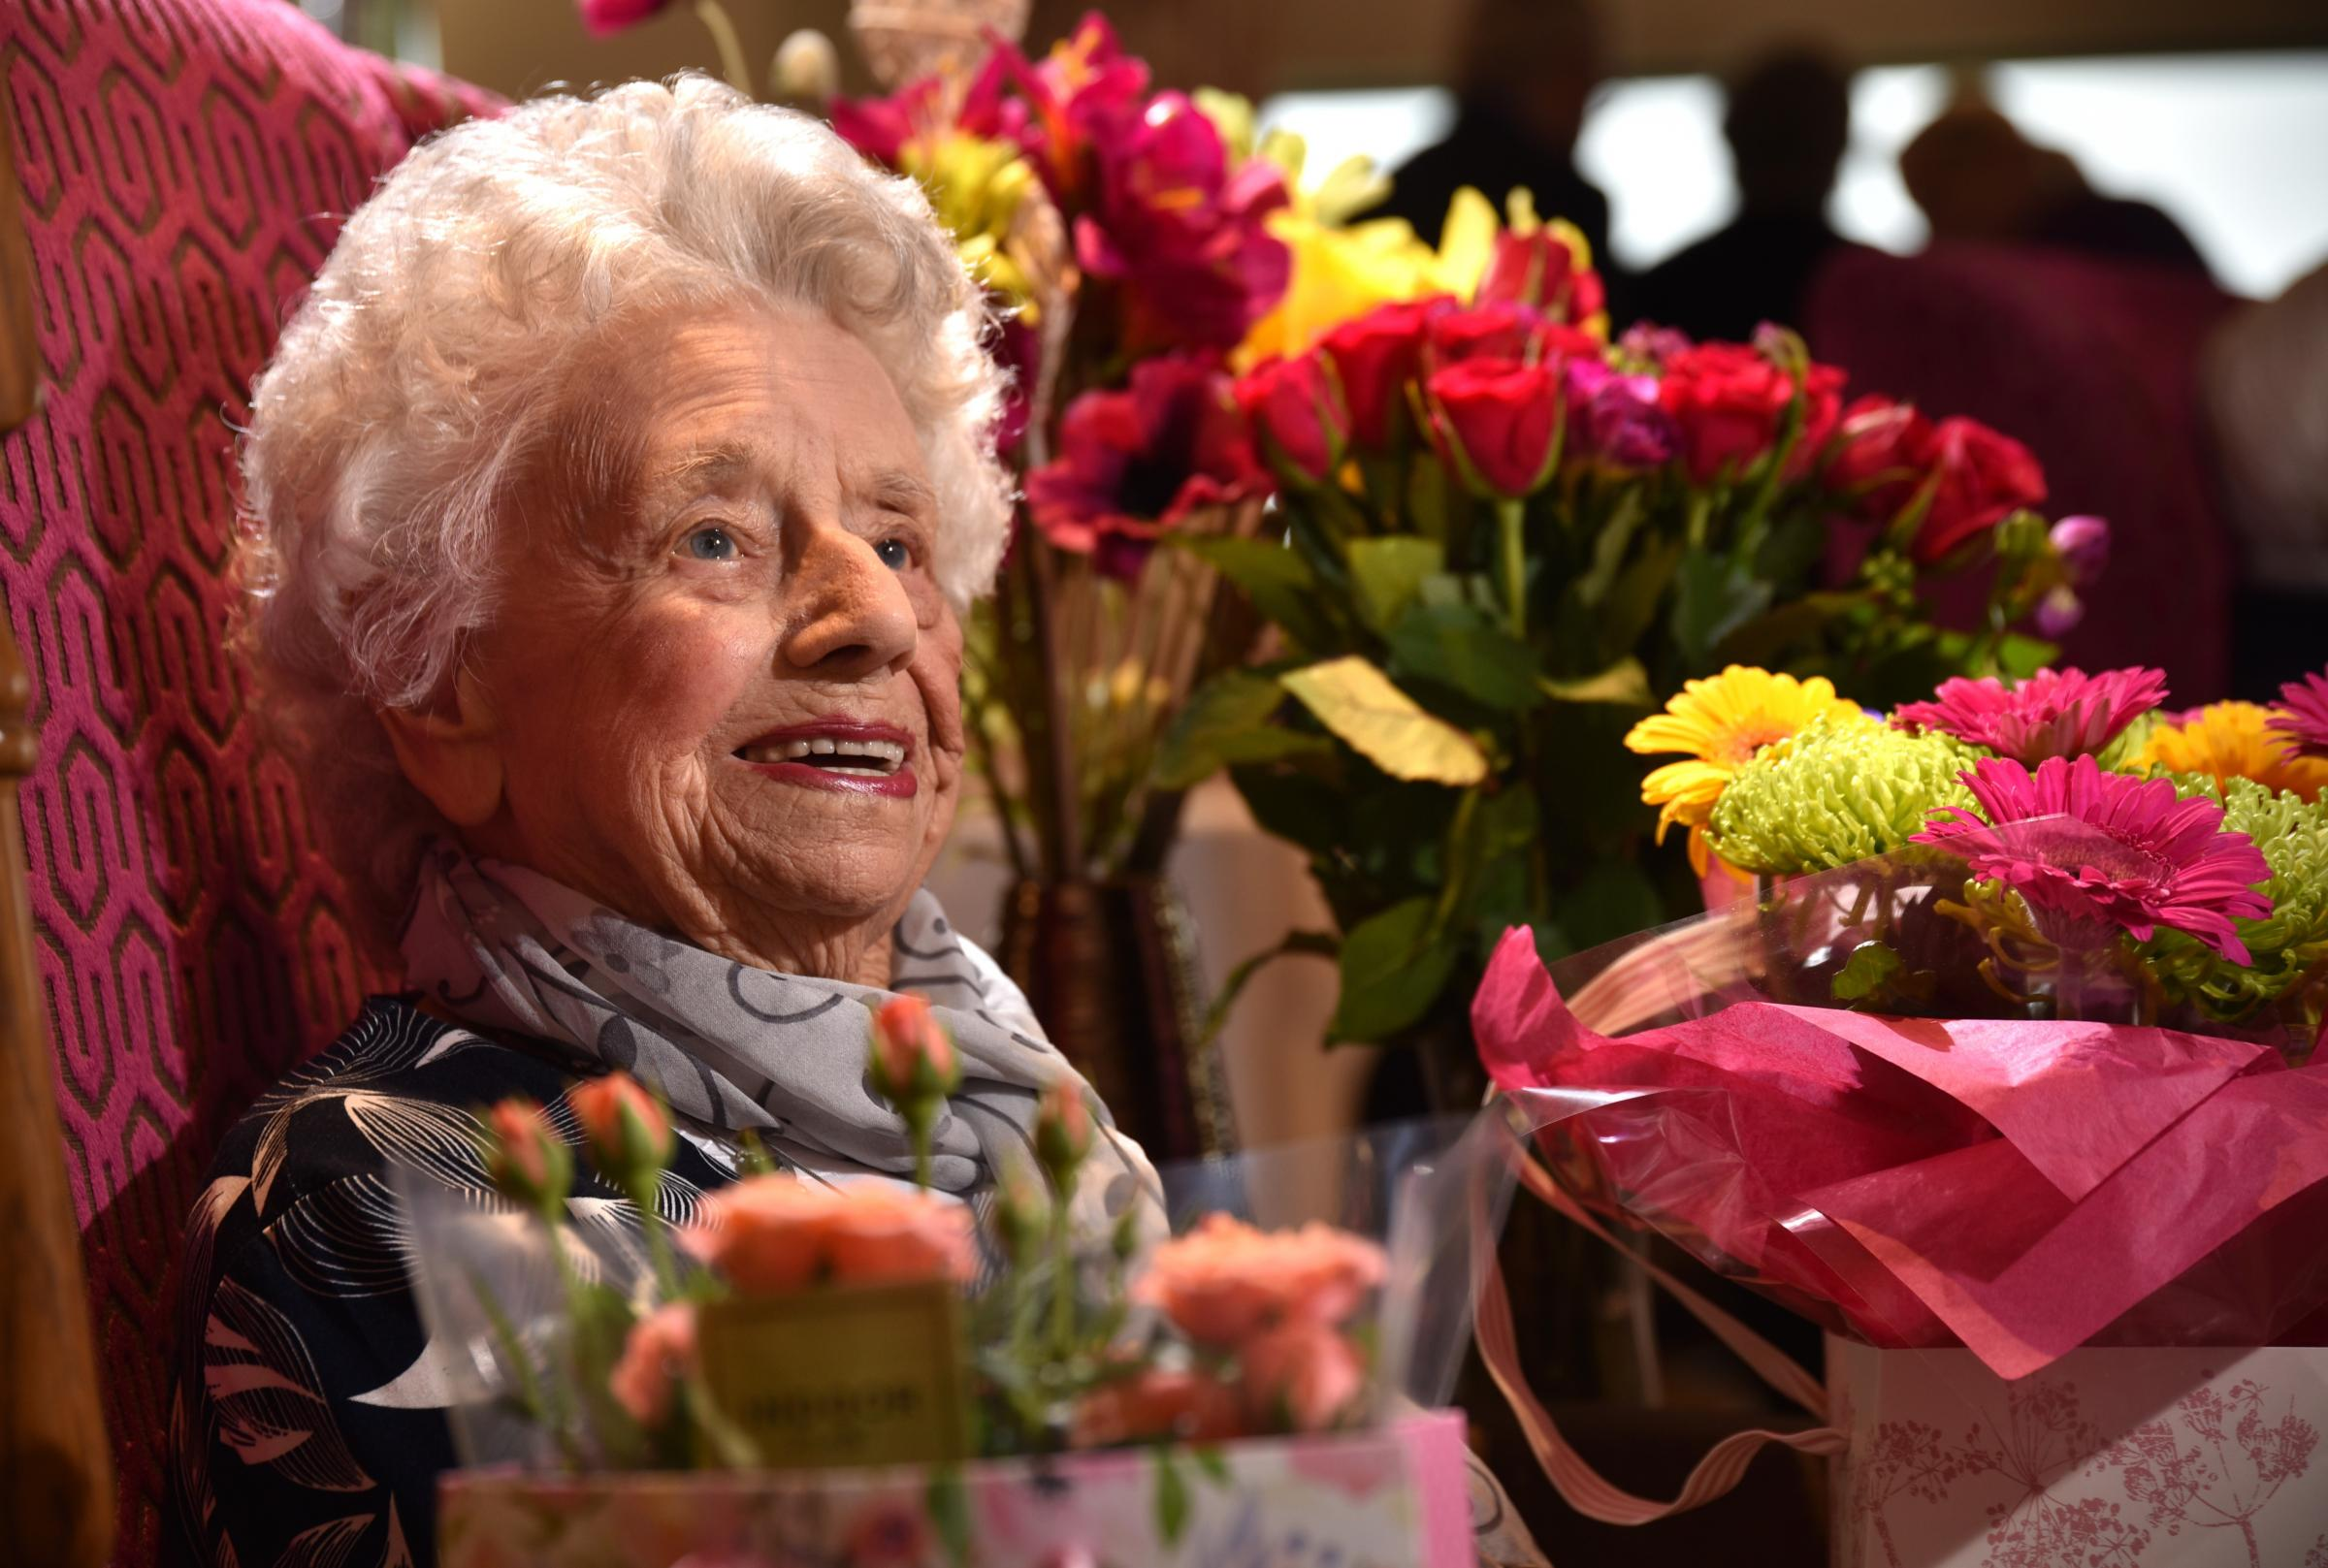 CELEBRATIONS: Marjorie Smith is thrilled with her flowers as she celebrates her 100th birthday